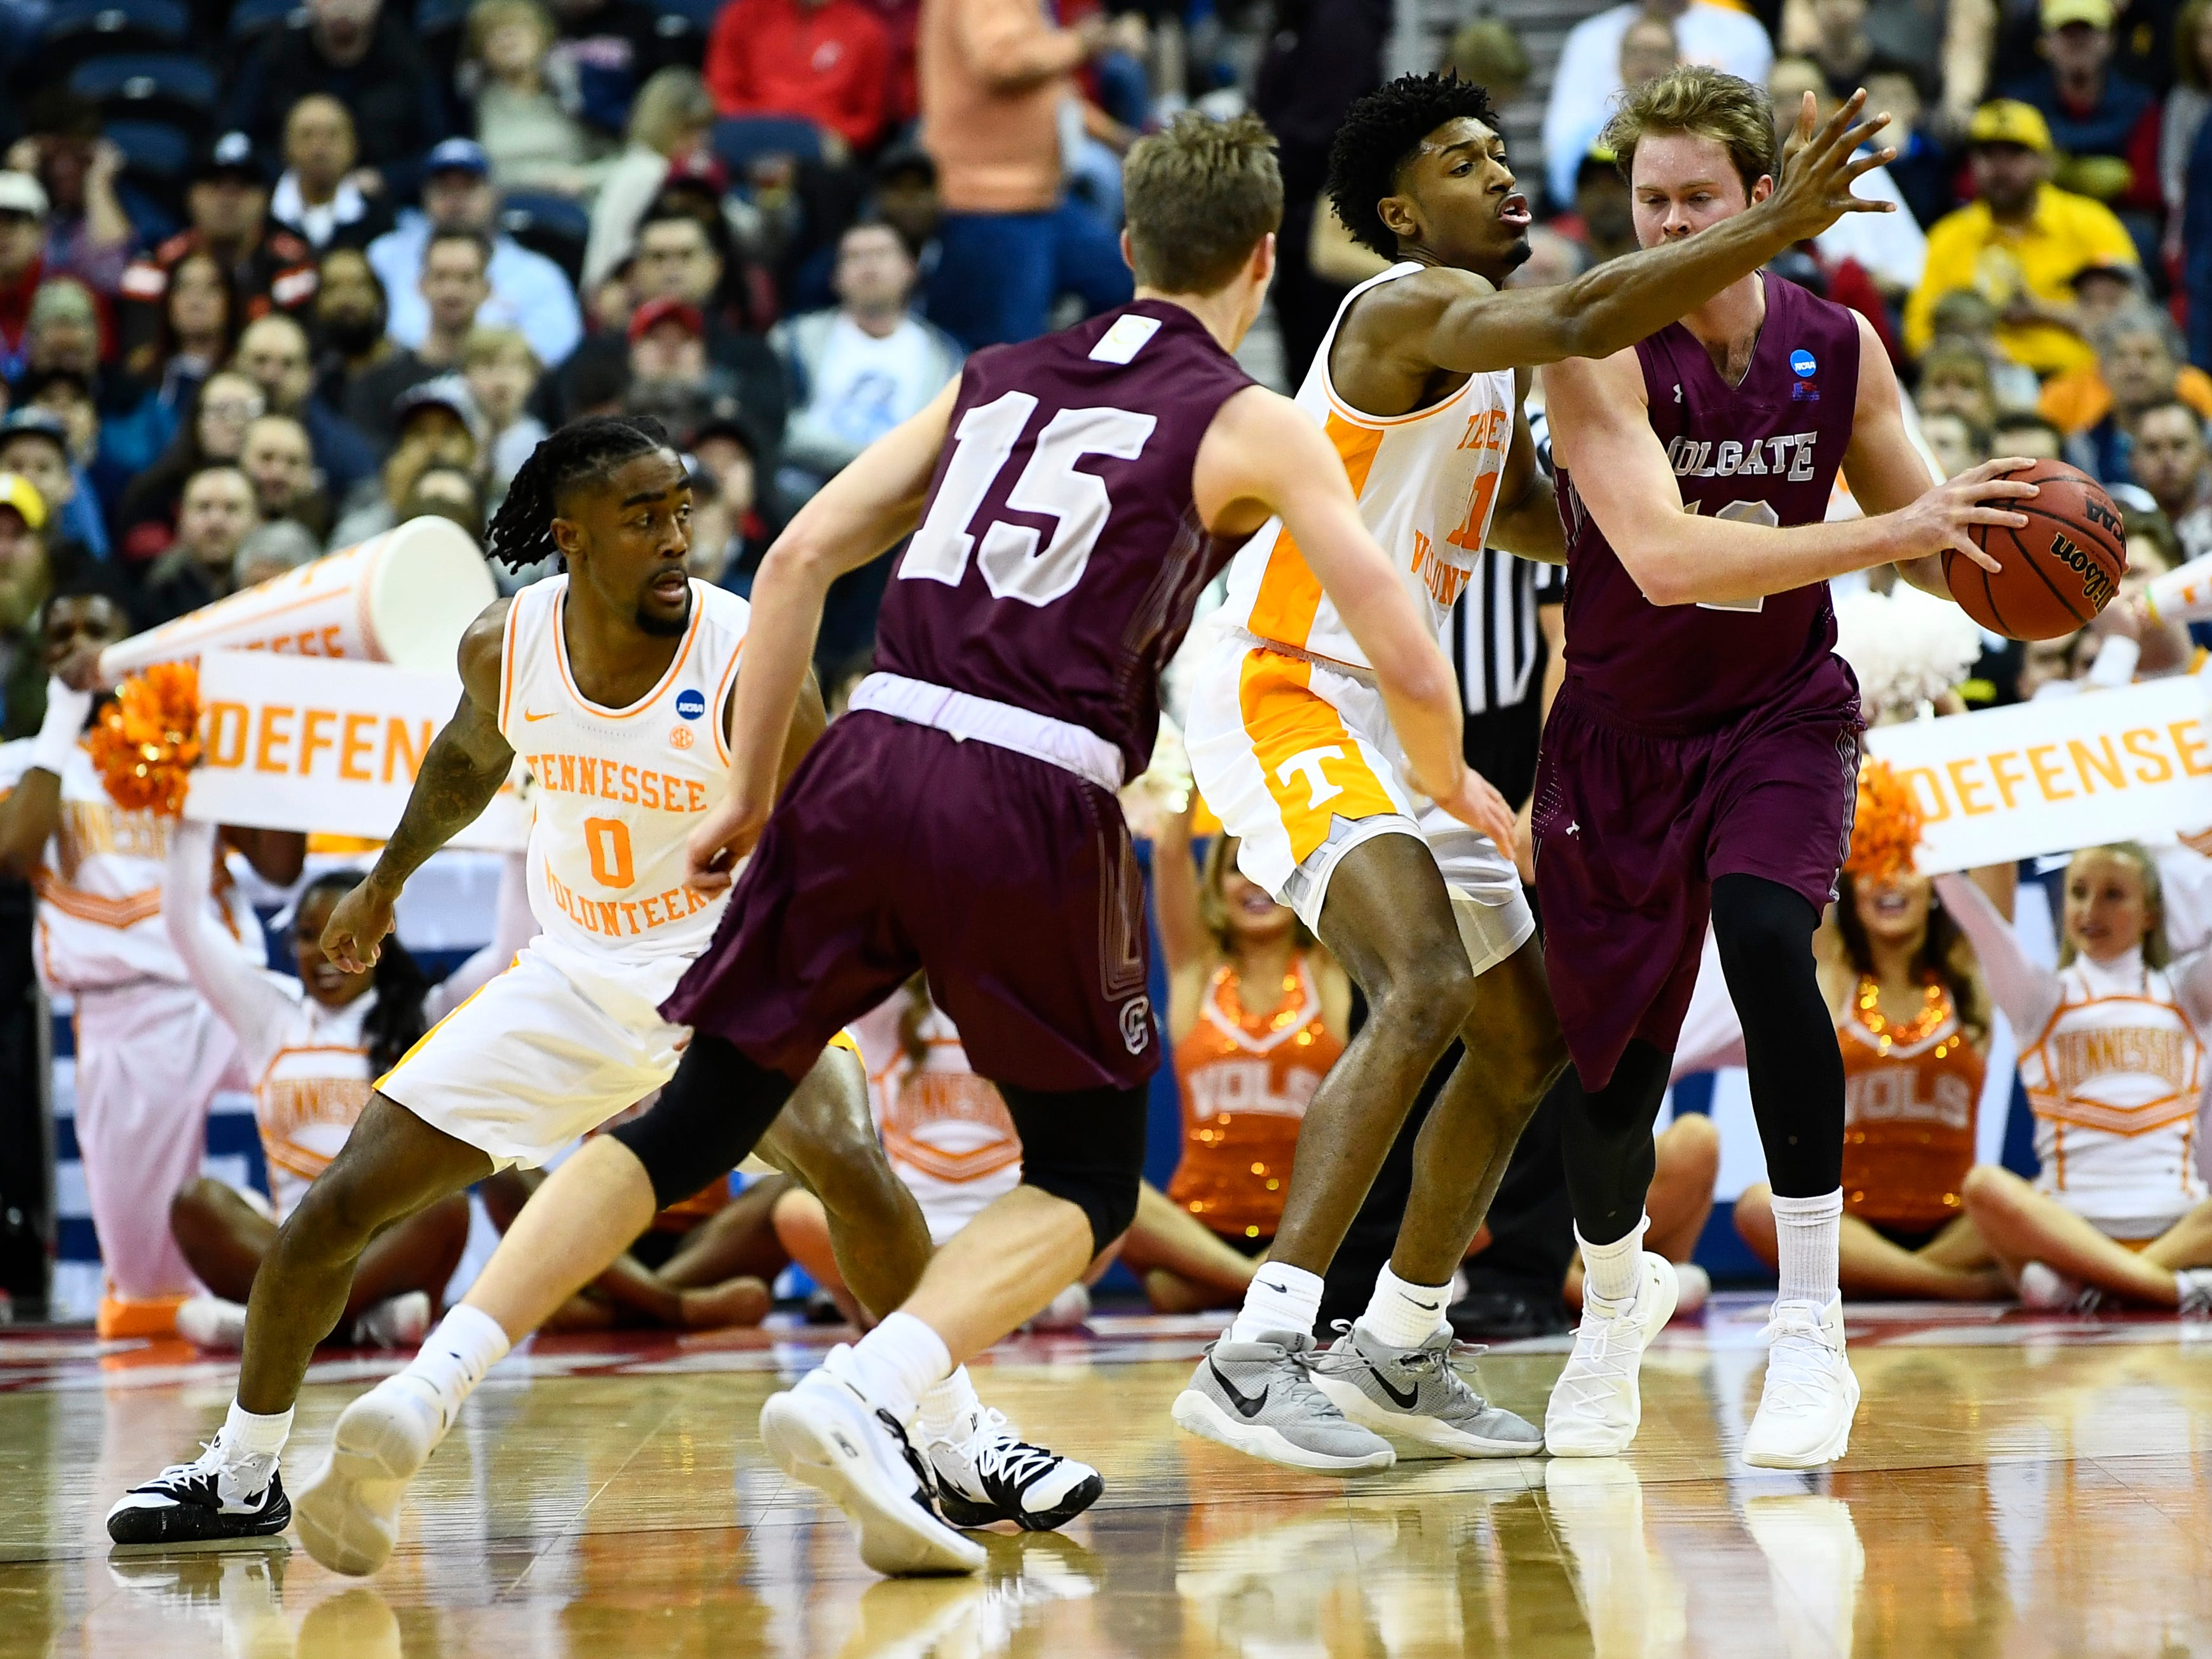 Tennessee forward Kyle Alexander (11) defends Colgate center Dana Batt (12) during the first round game of the NCAA Tournament at Nationwide Arena in Columbus, Ohio, on Friday, March 22, 2019.